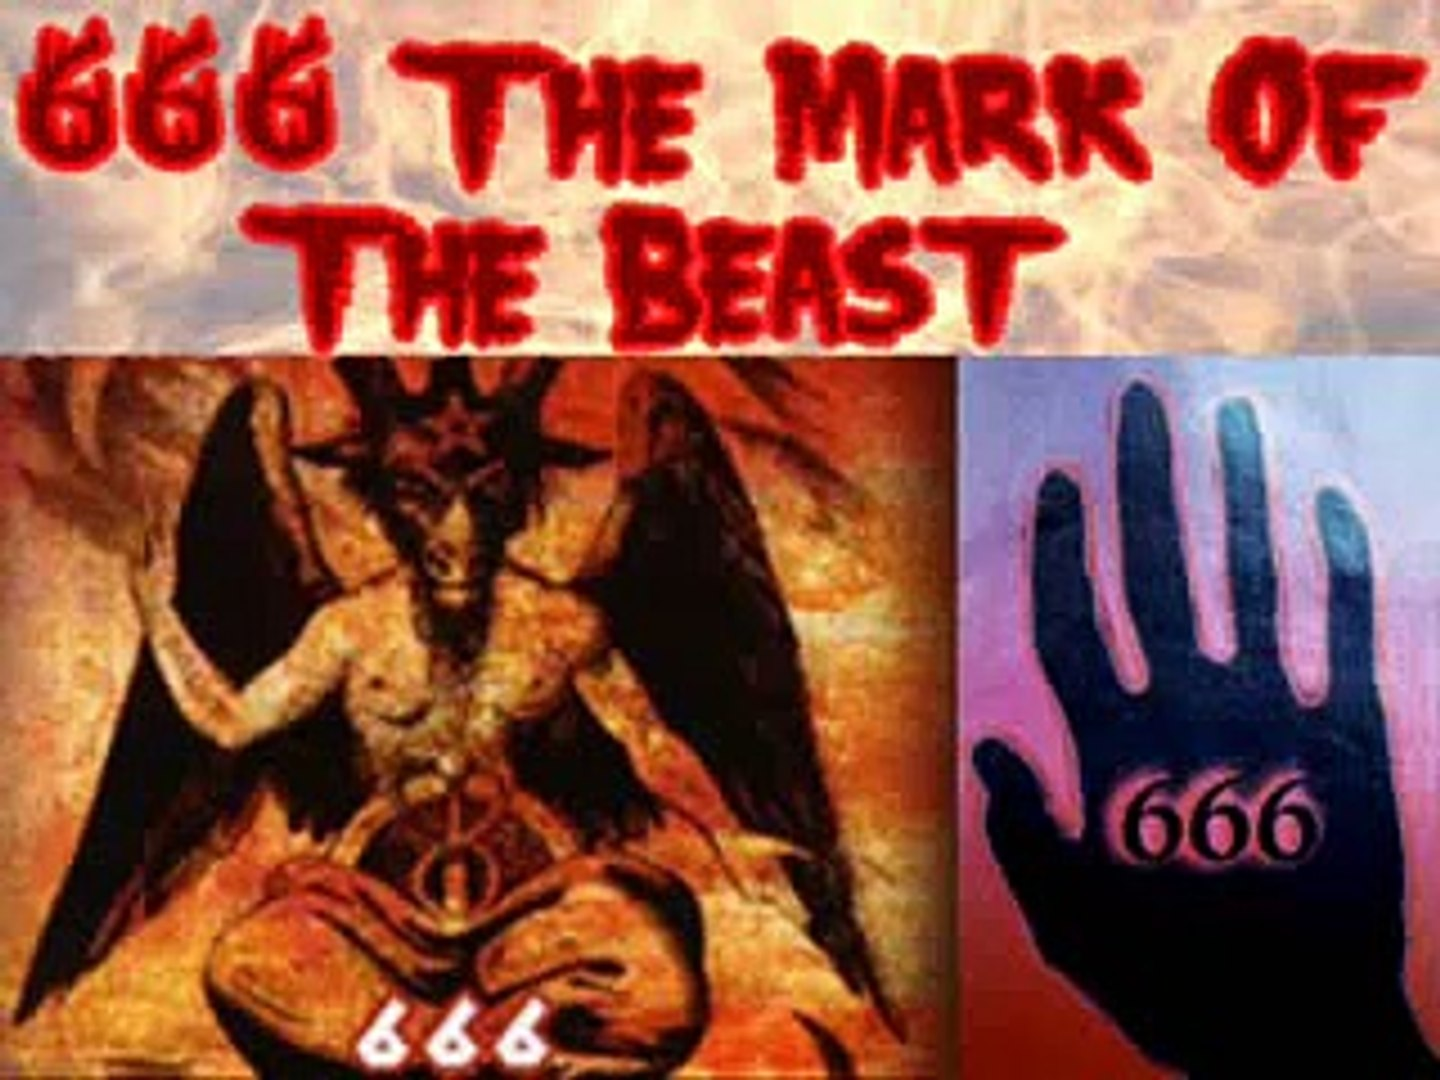 WARNING! 666 The Mark of the Beast - video Dailymotion